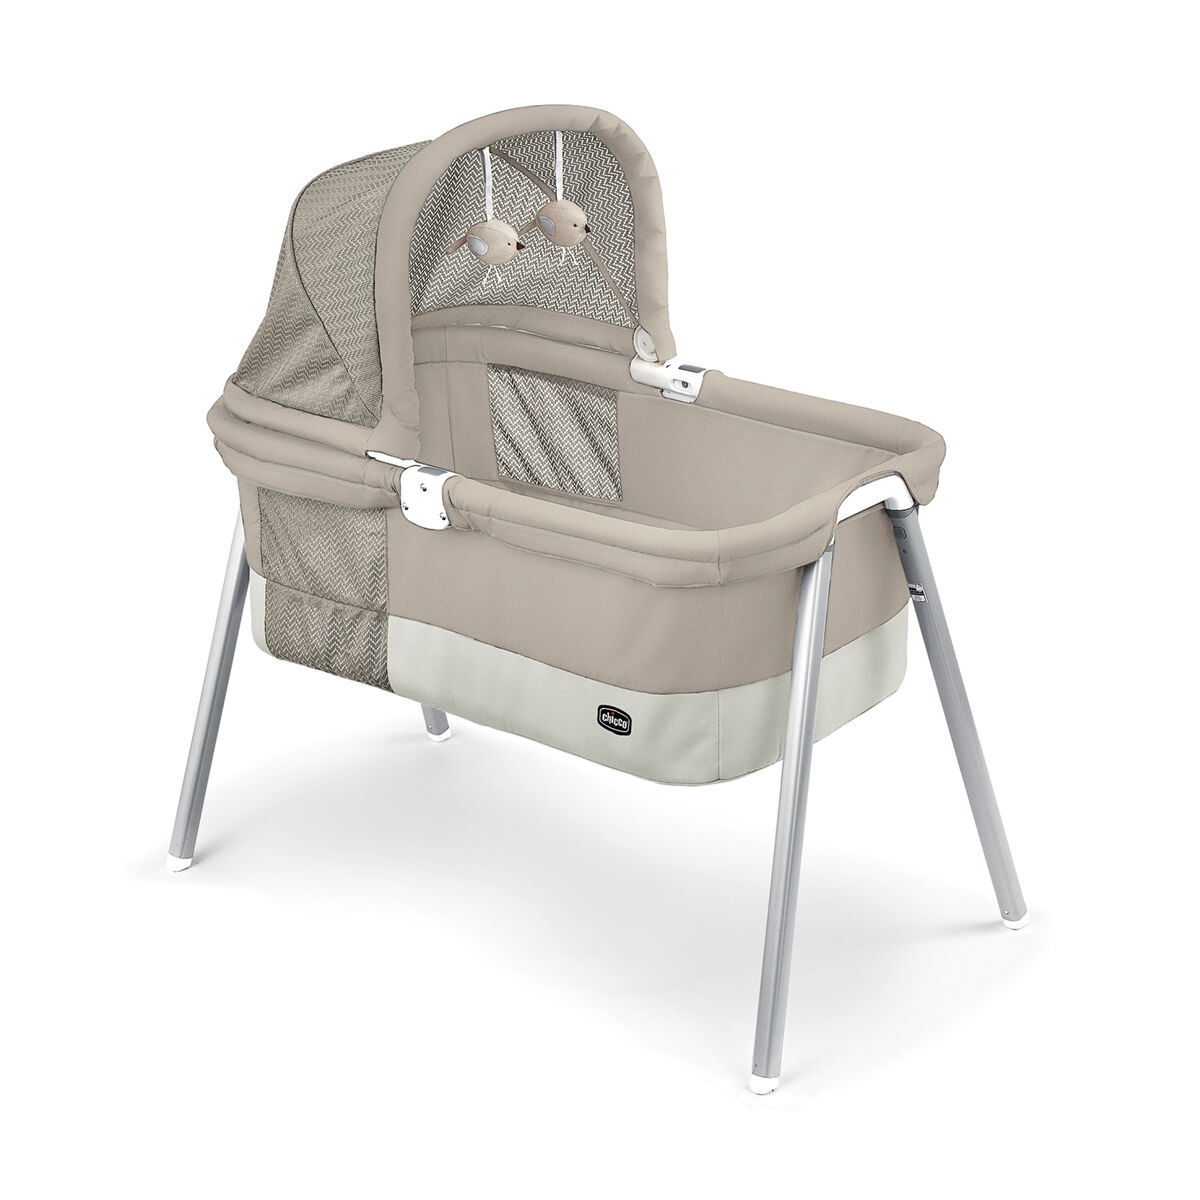 Baby bed vs bassinet - Lullago Deluxe Portable Bassinet Taupechicco Lullago Deluxe Portable Bassinet With Canopy Taupe